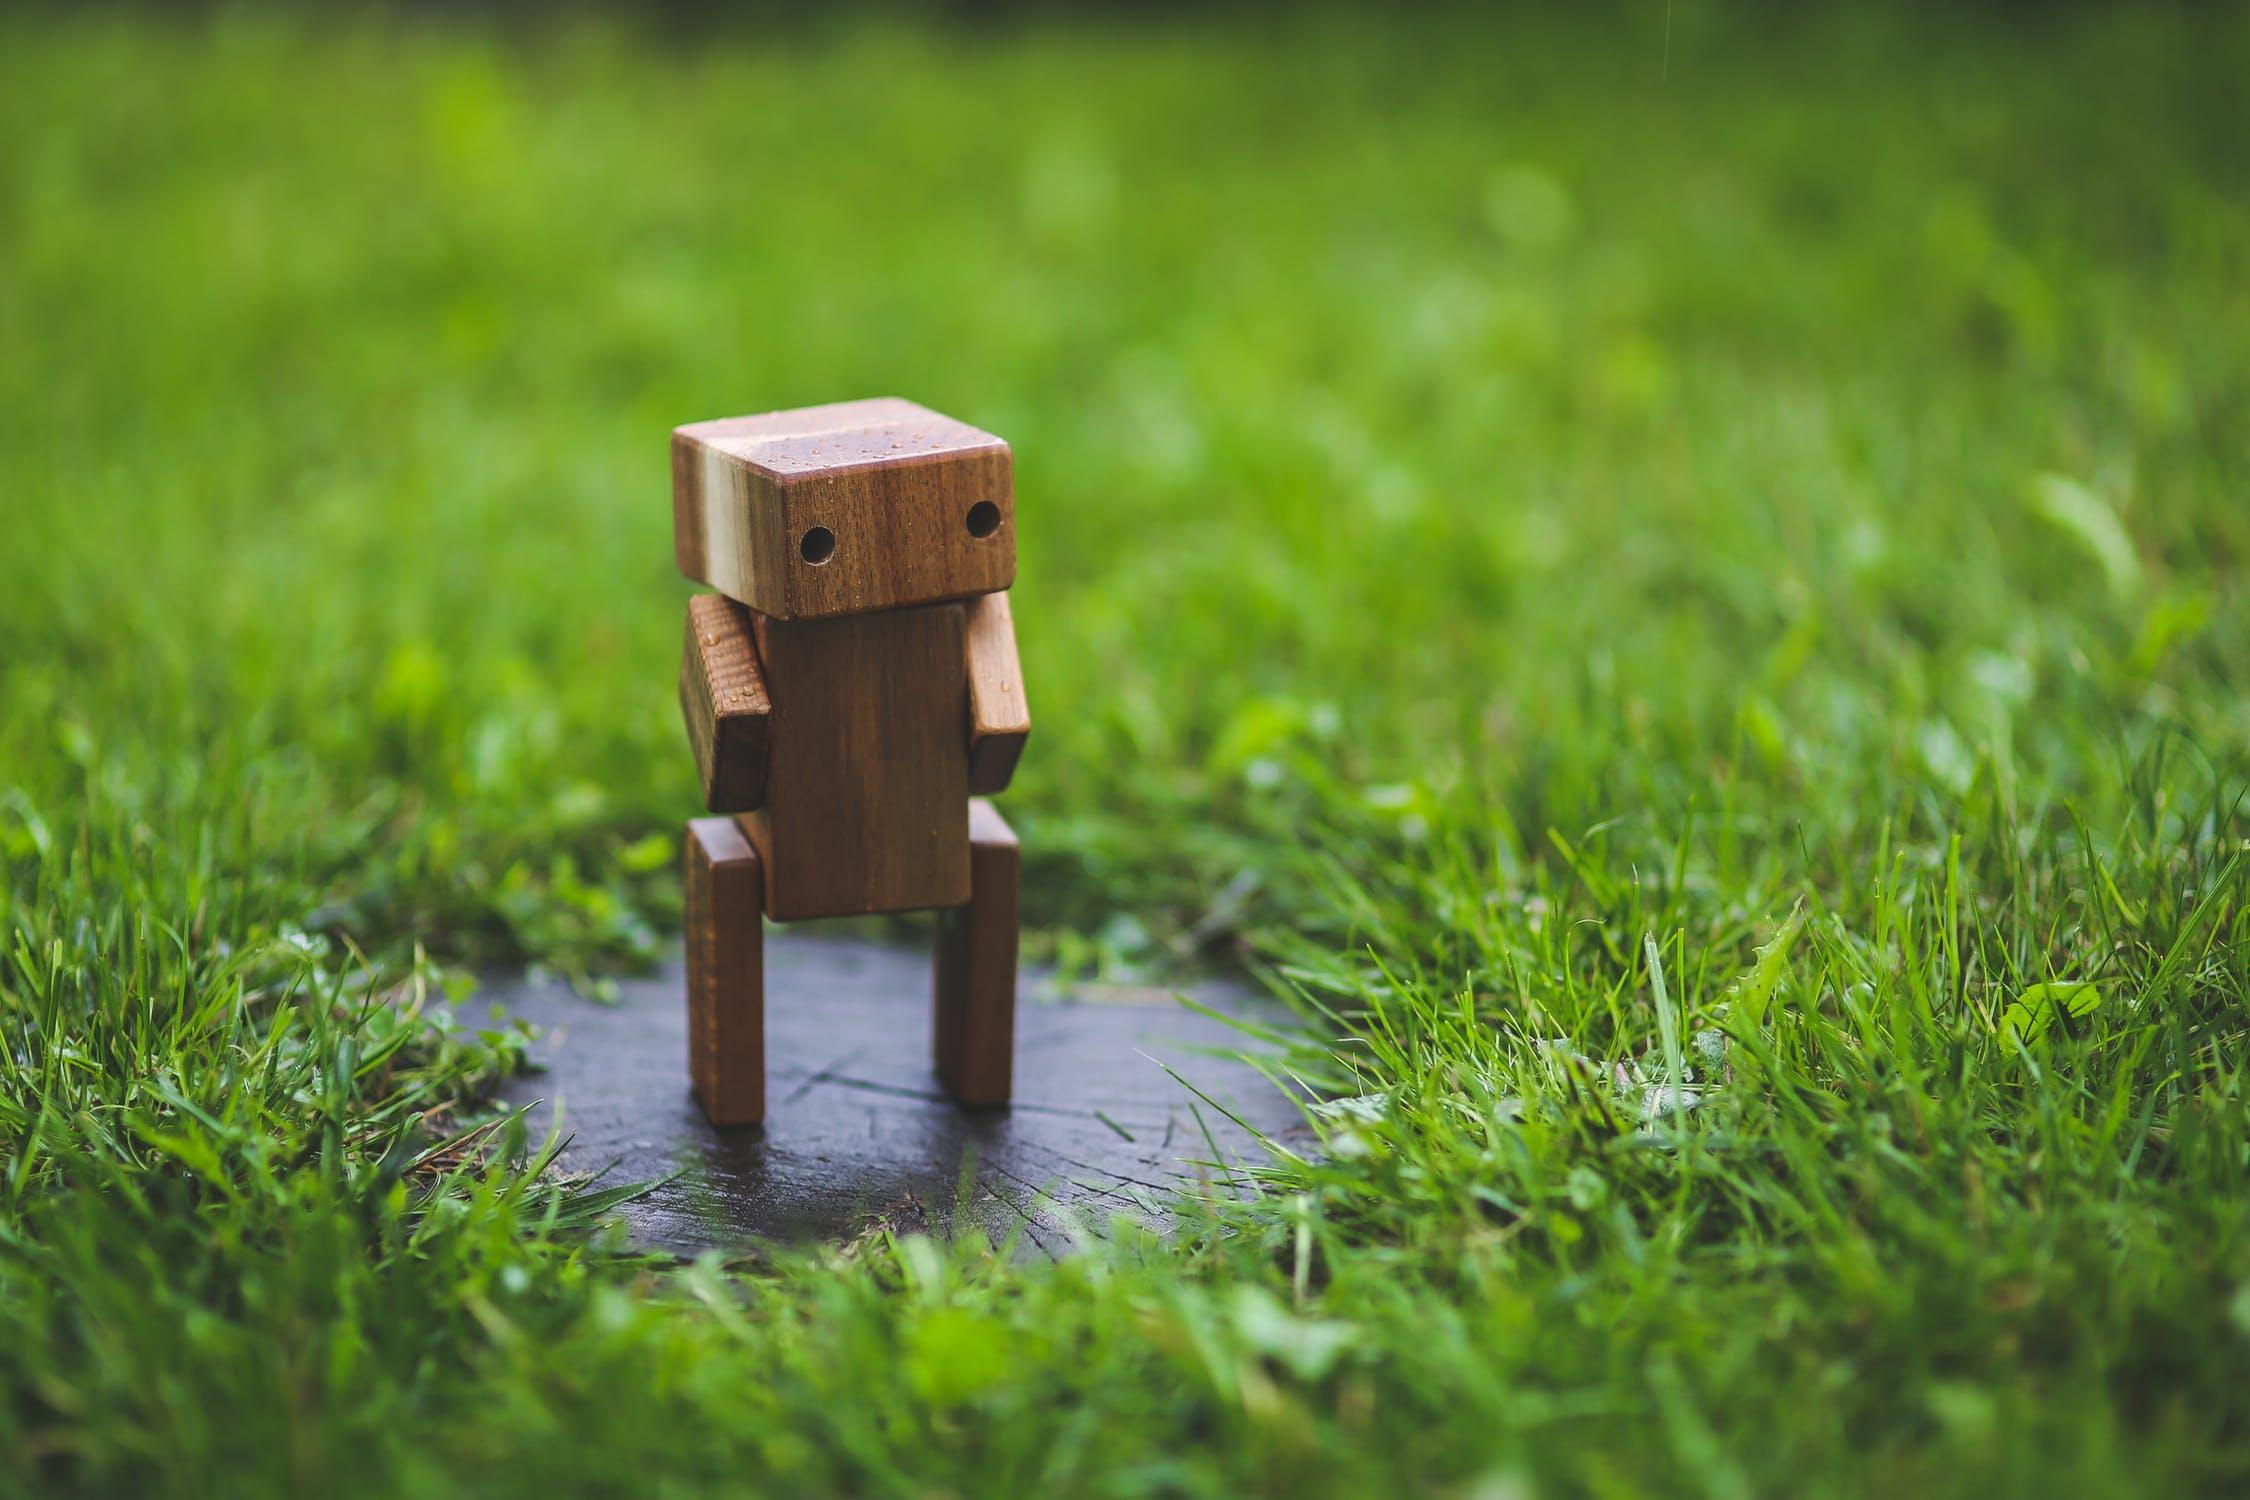 wooden robot in a patch of grass